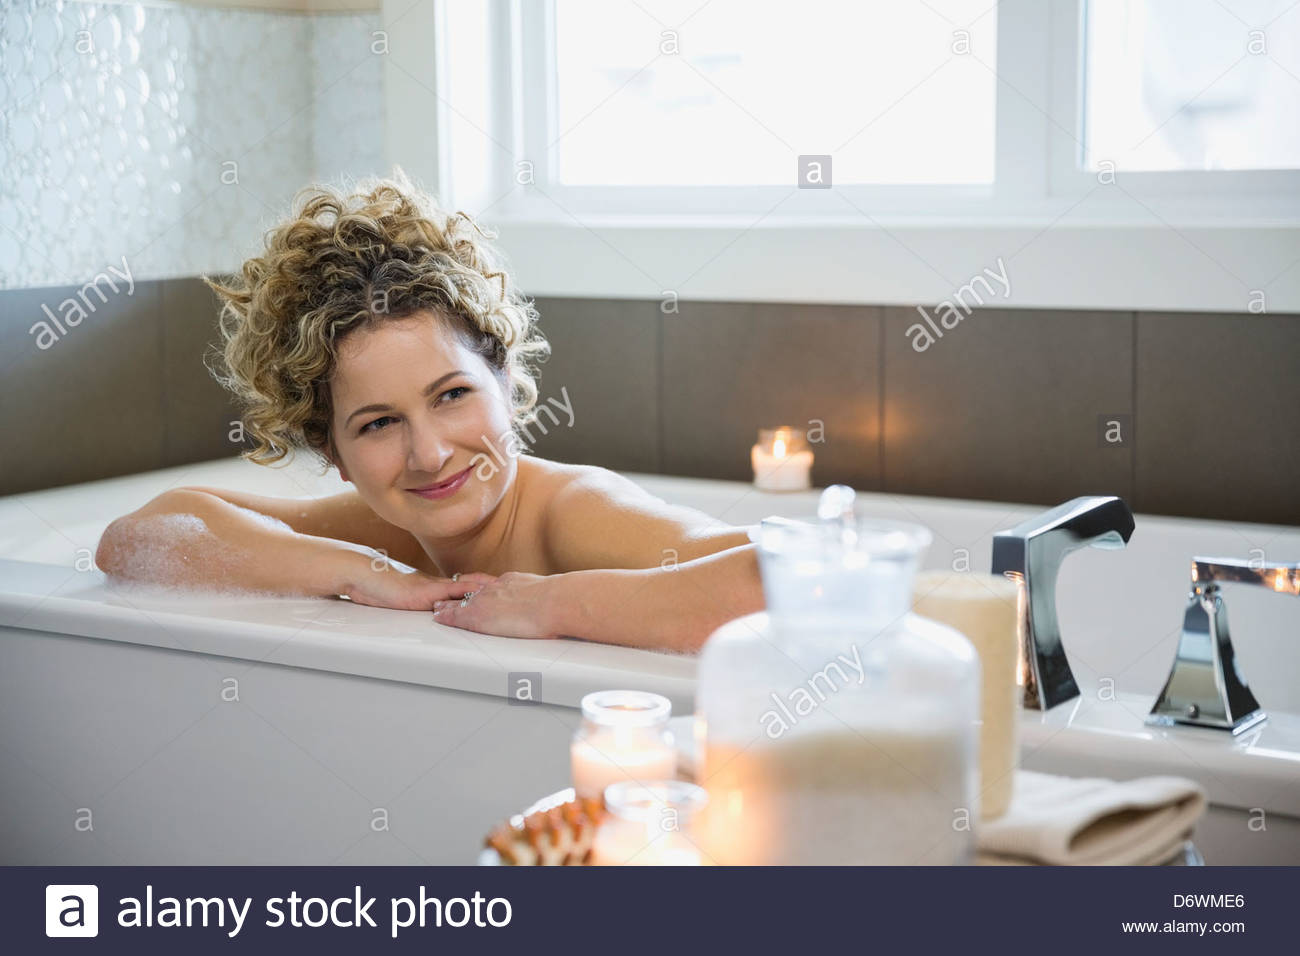 Mature woman looking away while relaxing in bathtub - Stock Image